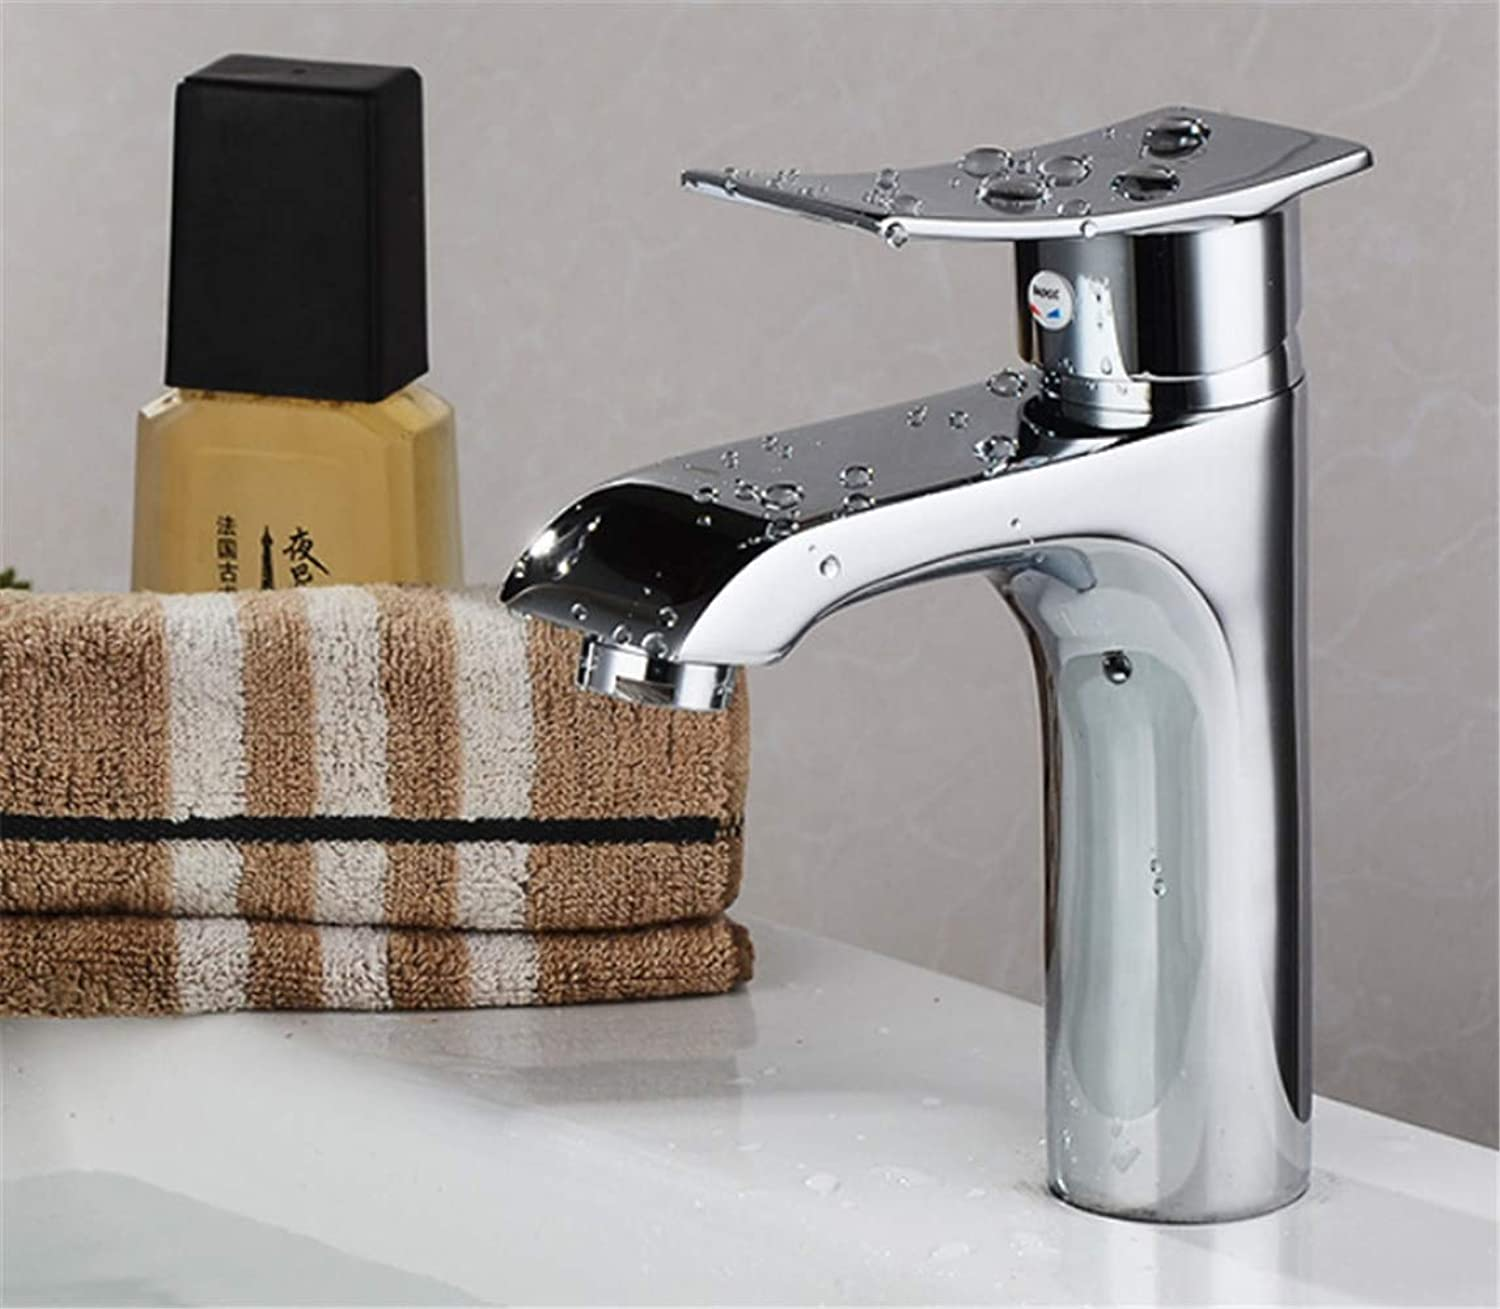 Faucet Modern Luxury All Copper Washbasin Faucet Hot and Cold Water Mixing Basin Faucet Single Hole Single Handle